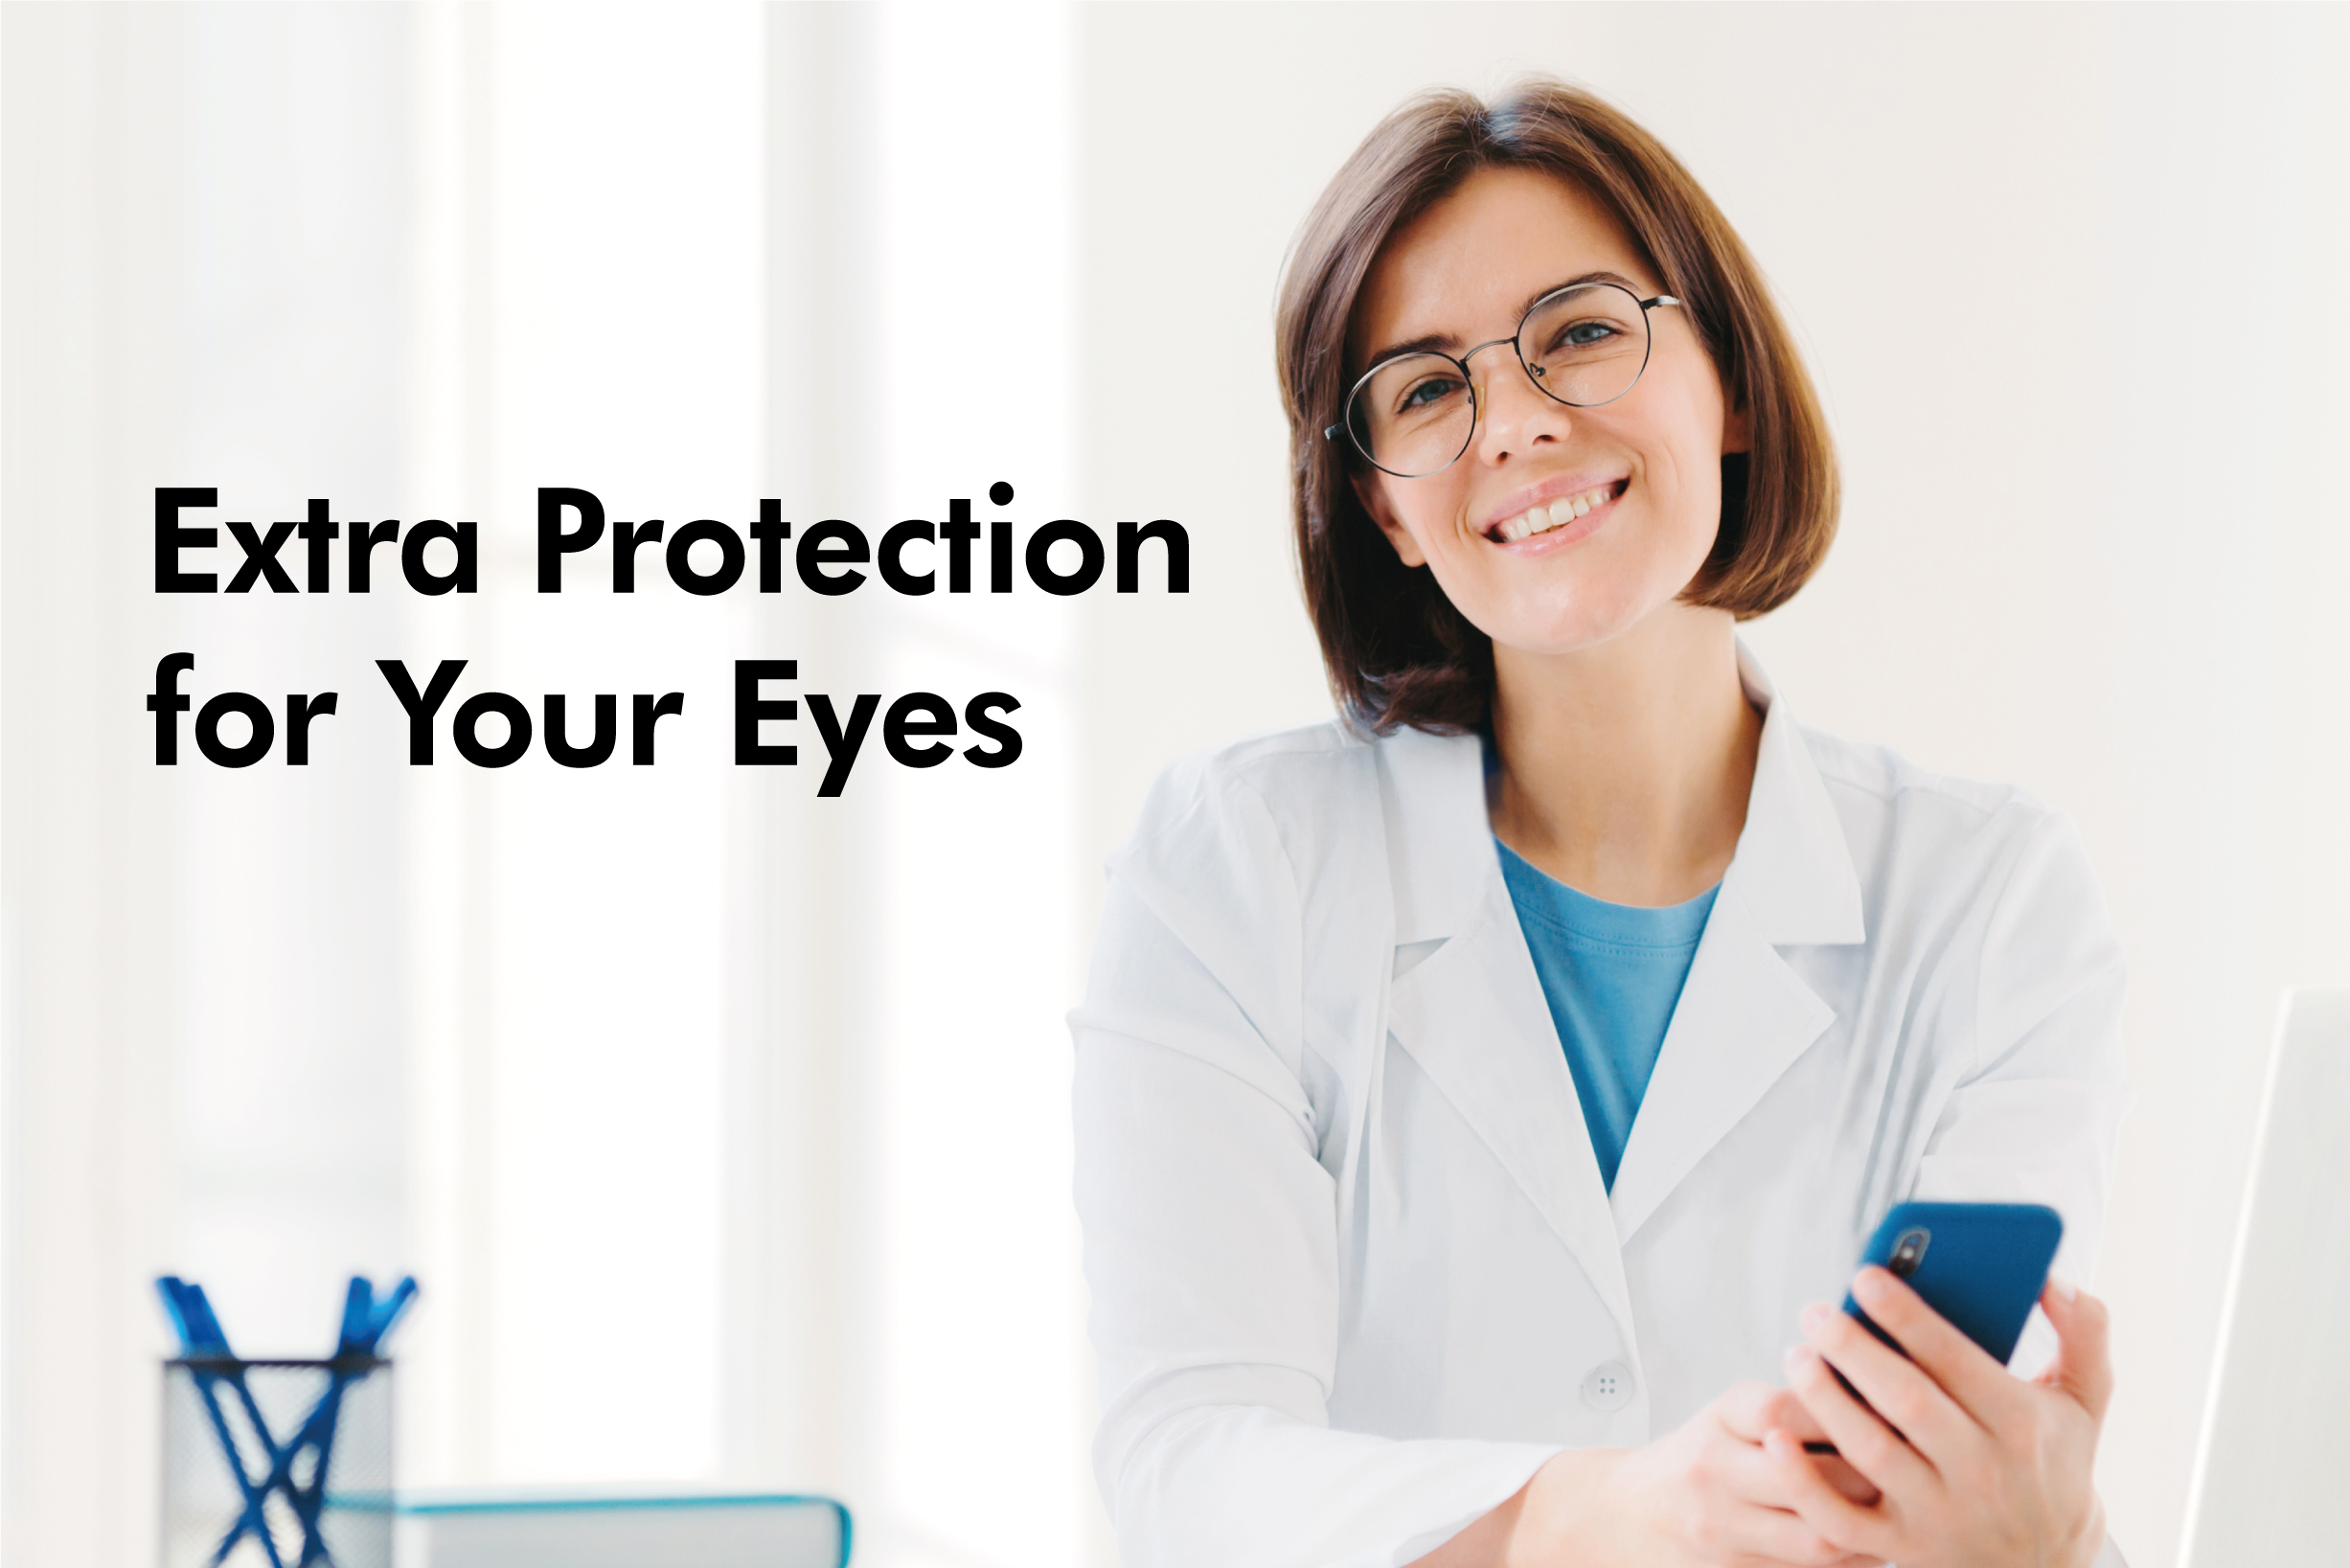 Hoshi Antimicrobial and Virus Guard: Keep Your Lenses Protected Against Microbes*